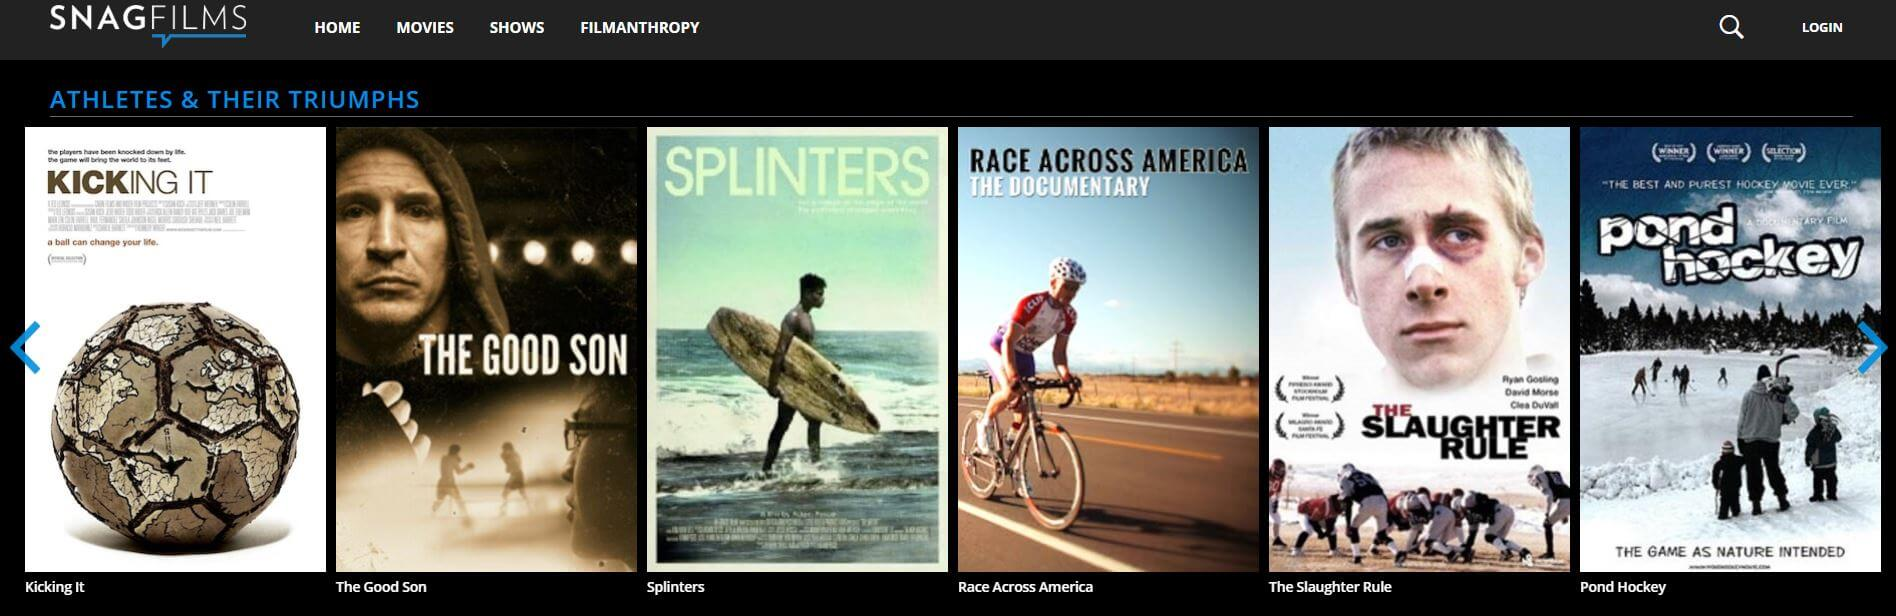 snagfilms cine documentales gratis